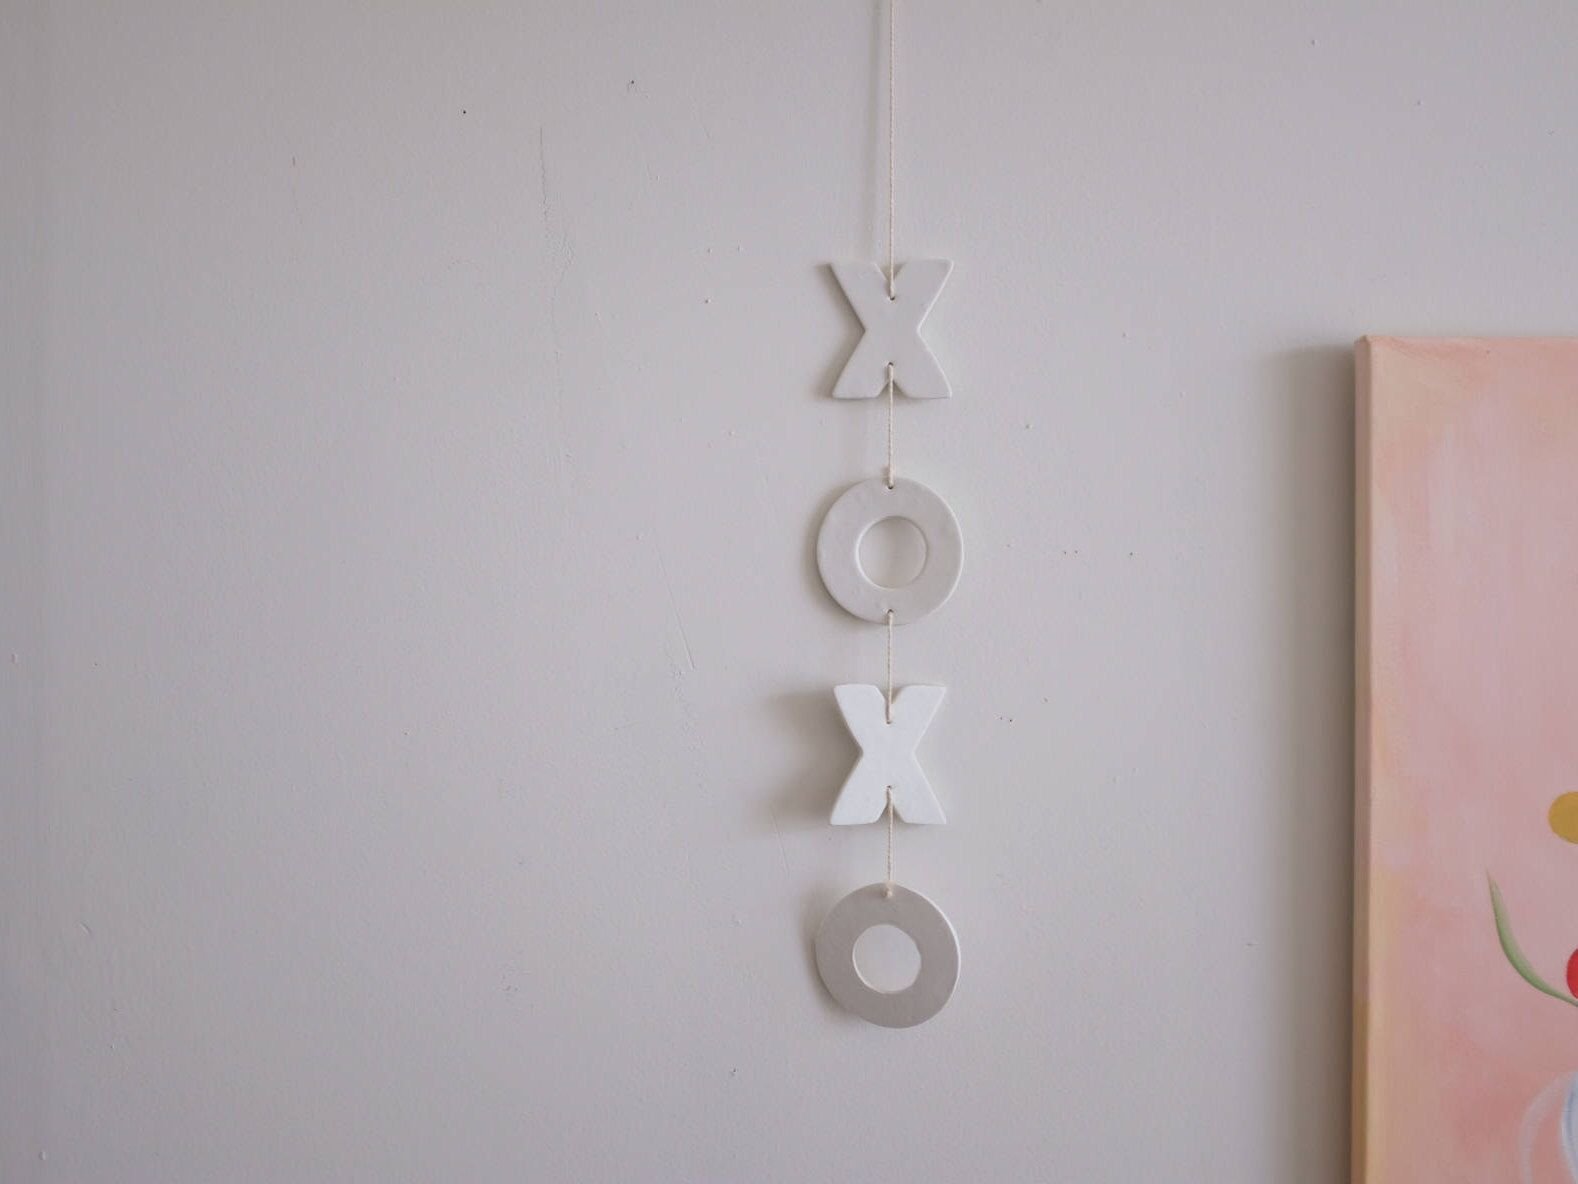 Xoxo mobile white clay mobile wall hanging valentineus day art